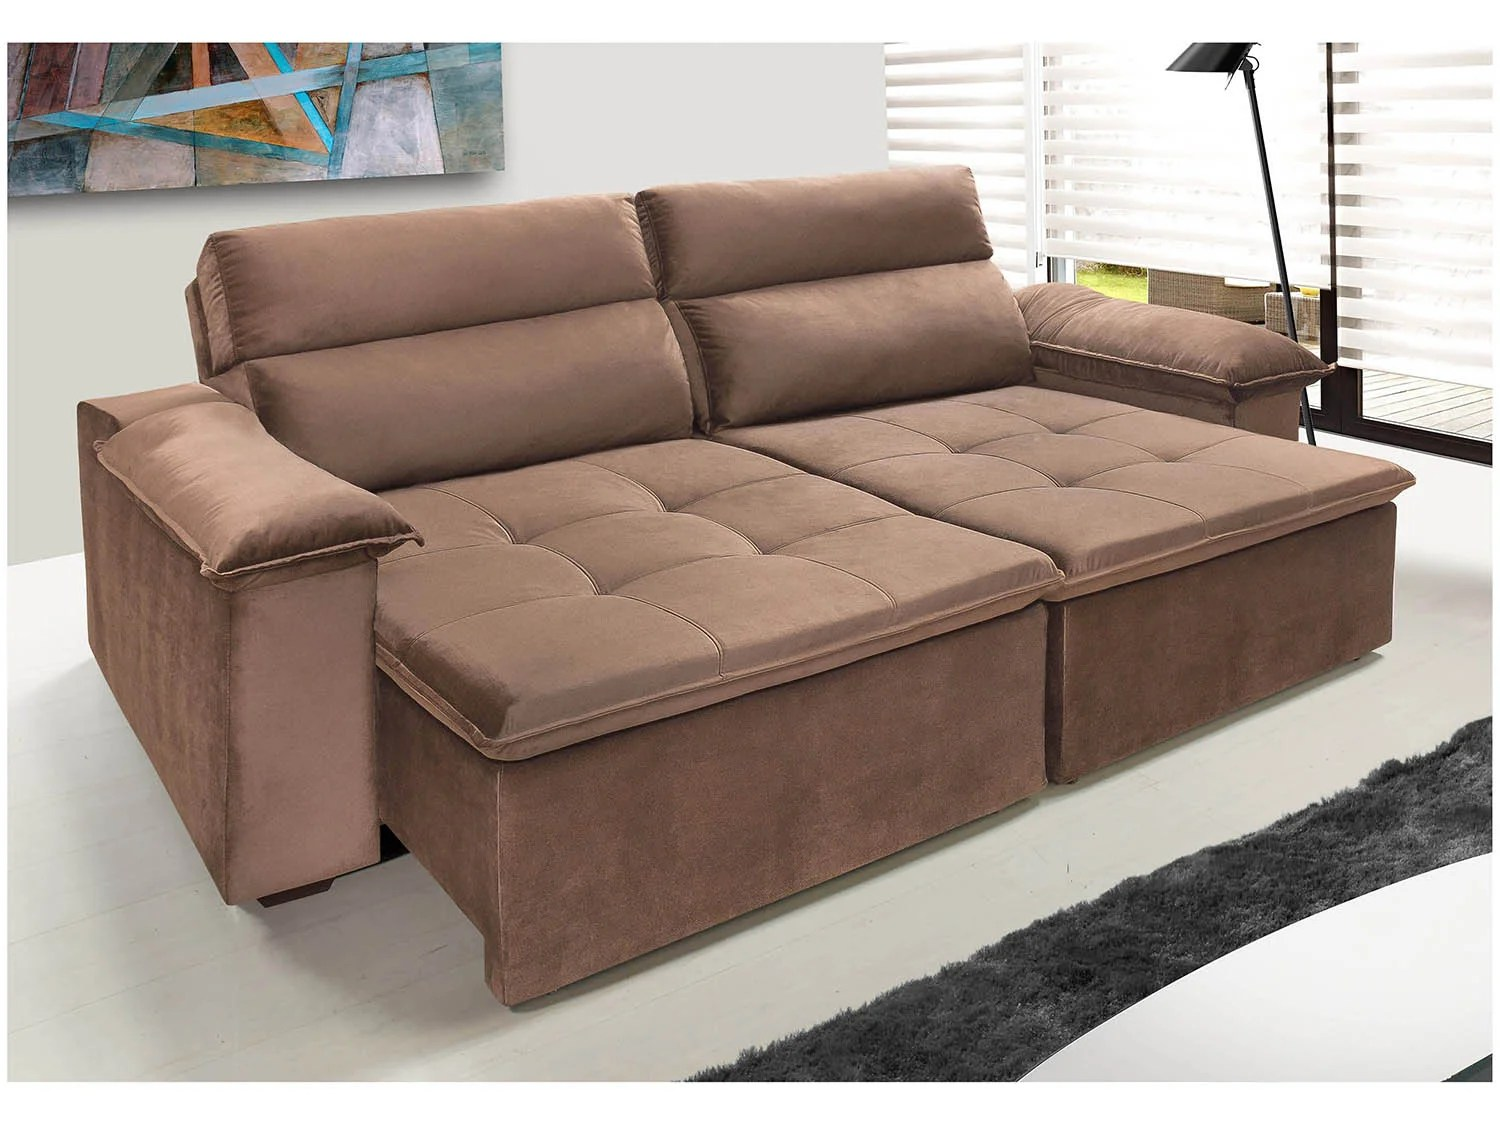 Sofa Retratil E Reclinavel Impermeavel Jogo De Sofa Retratil Magazine Luiza Resnooze